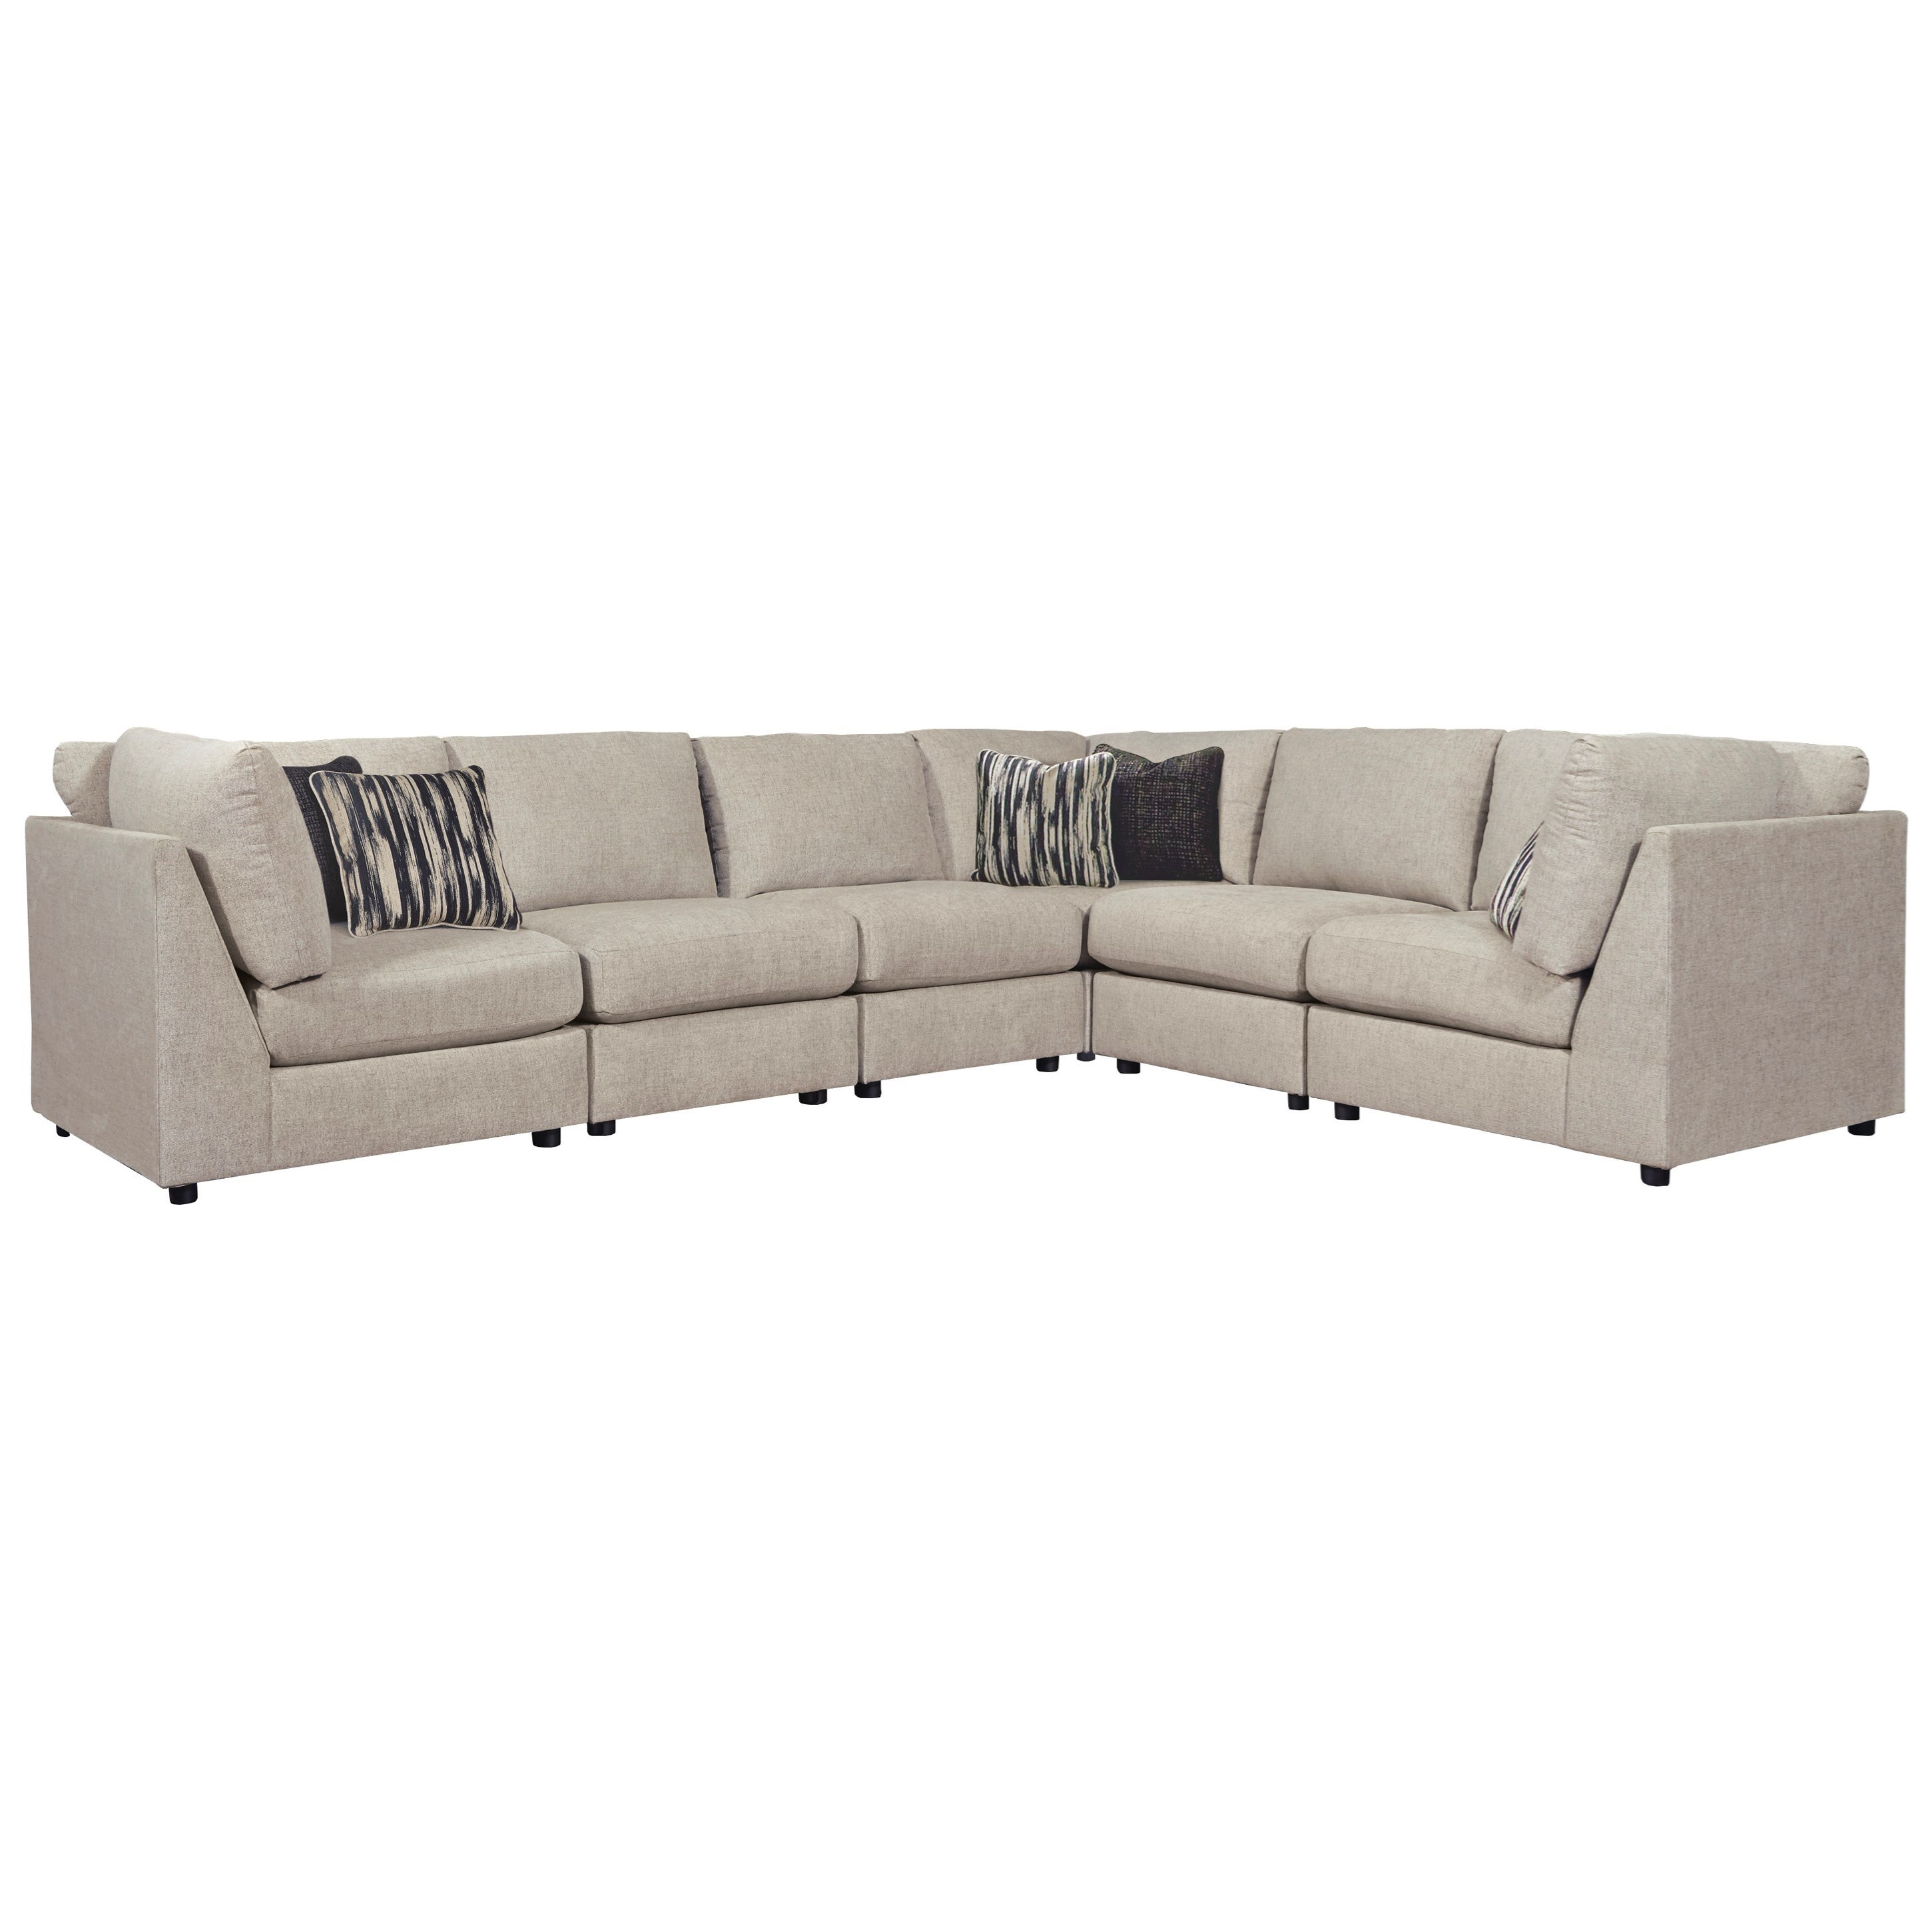 Kellway 6-Piece Sectional by Signature at Walker's Furniture